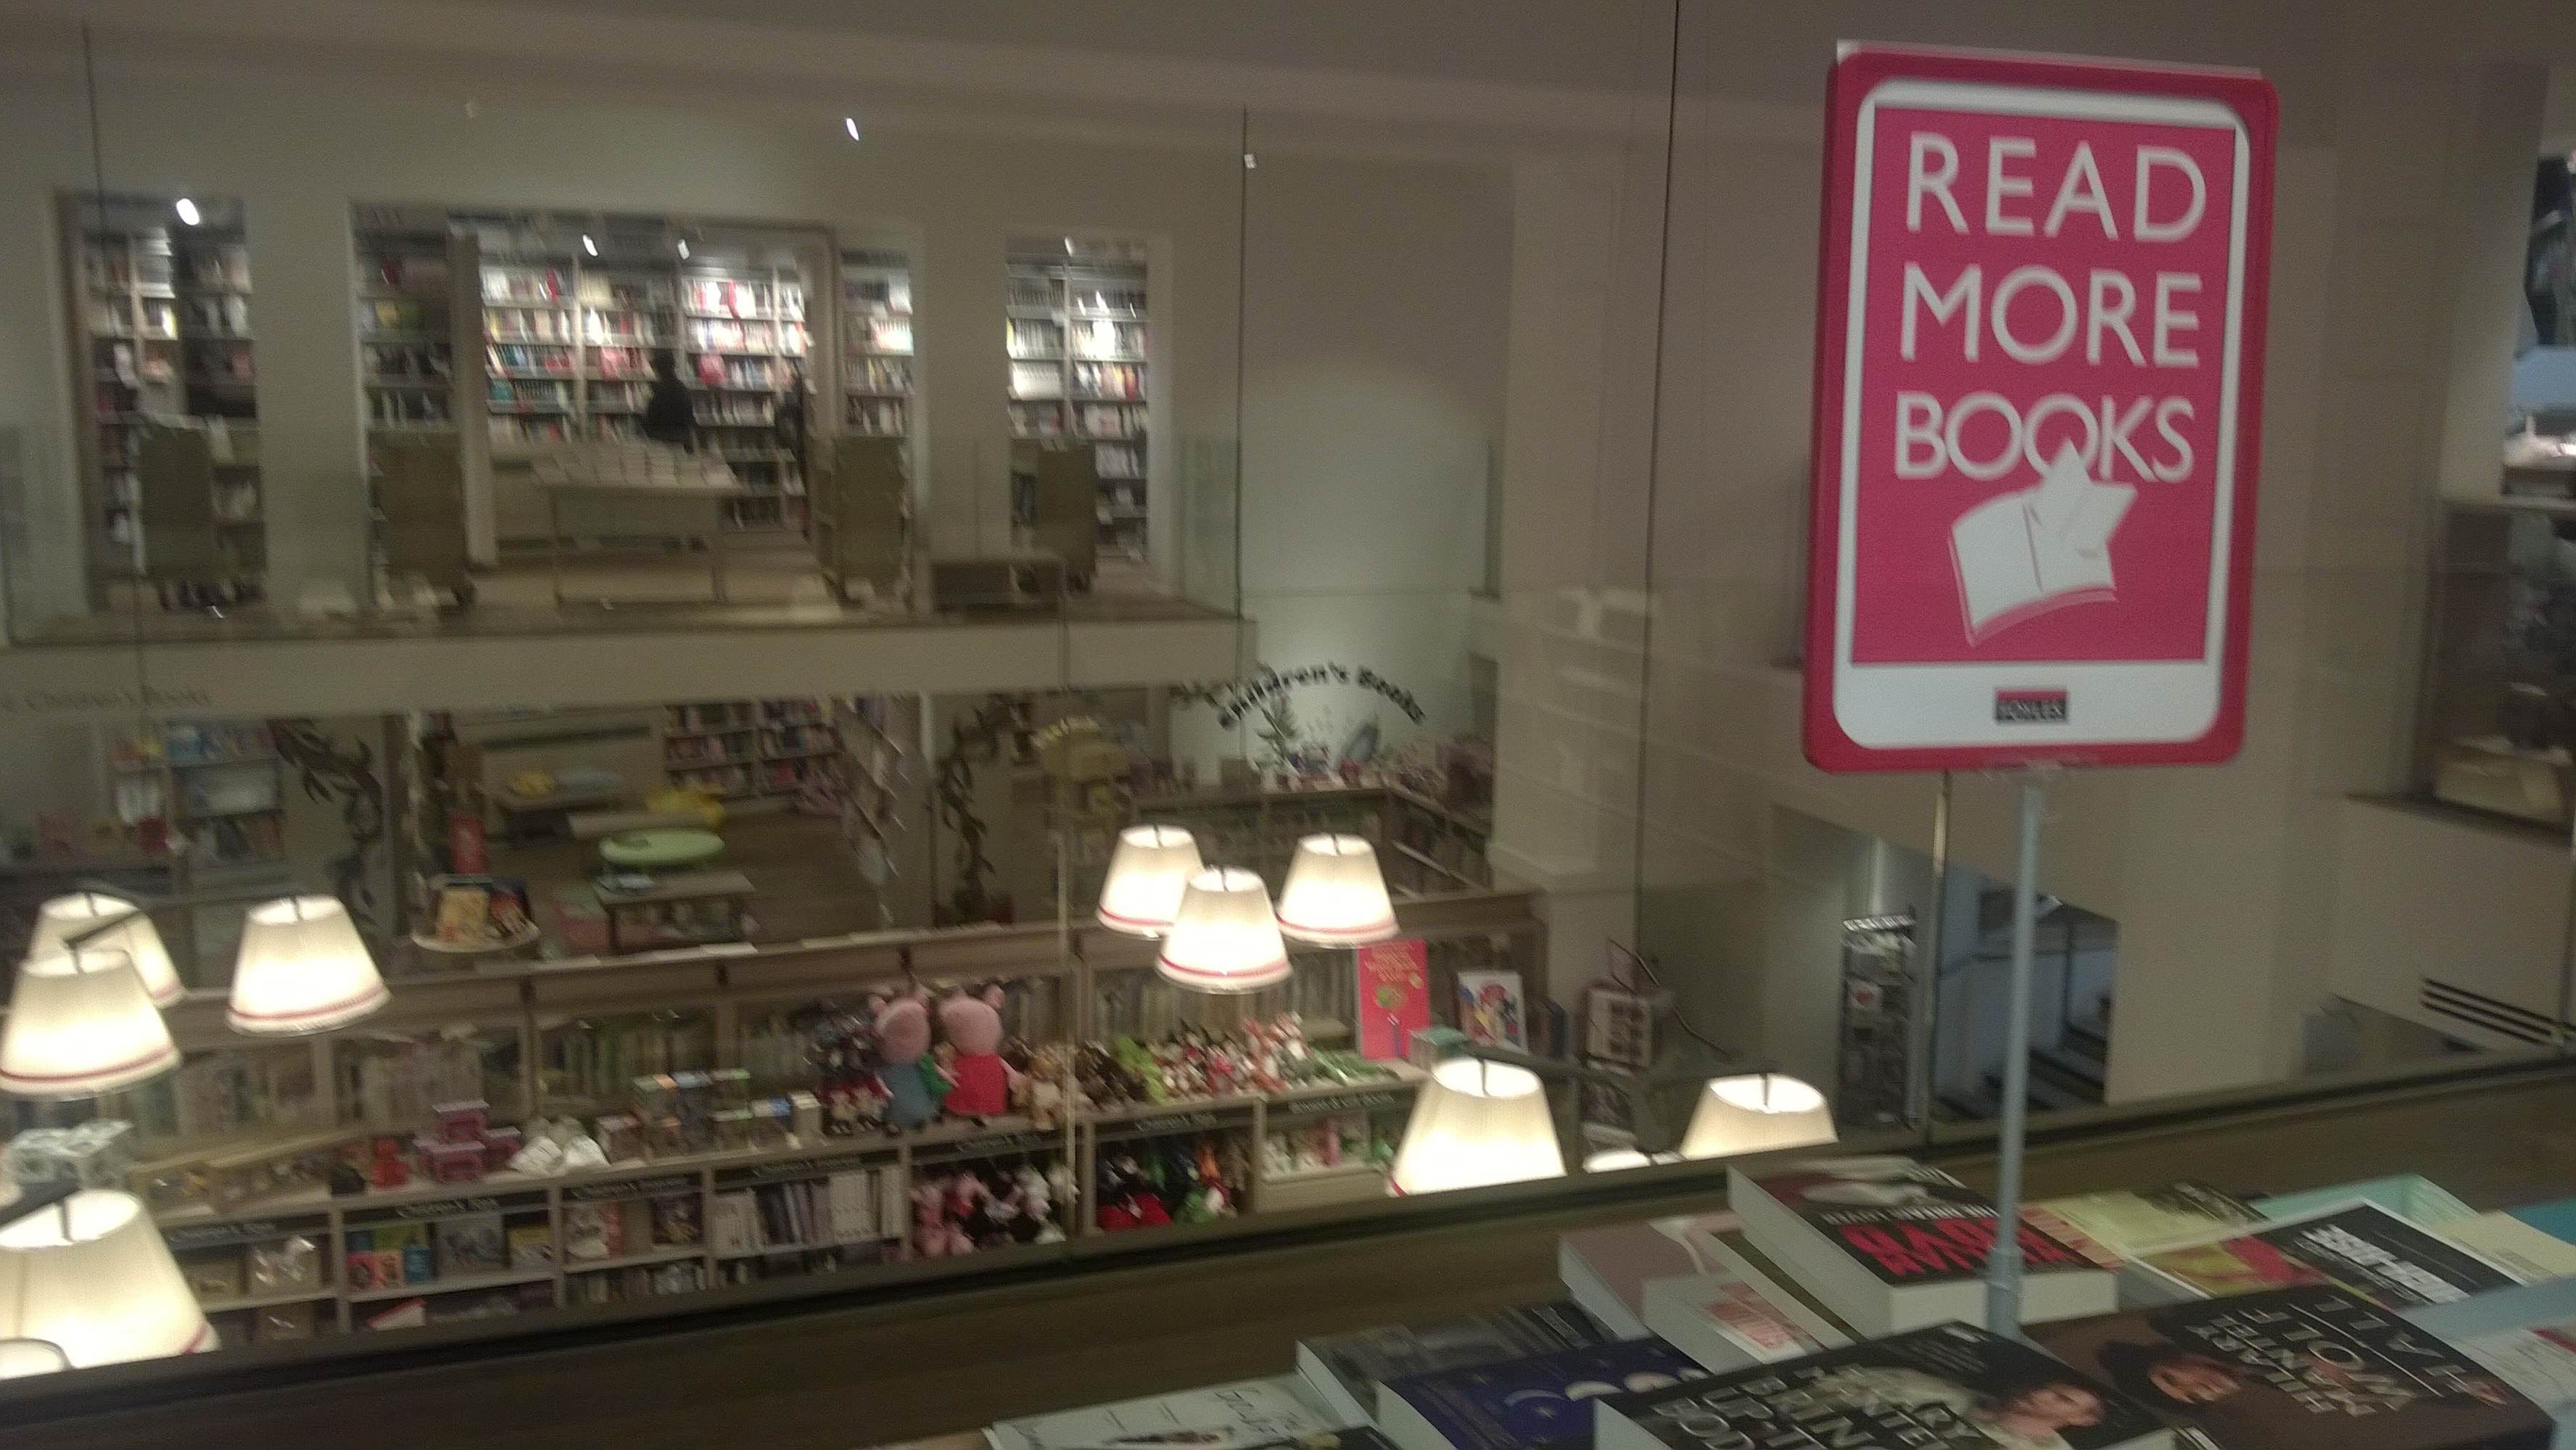 21 Ways To Sustain Independent Bookshops